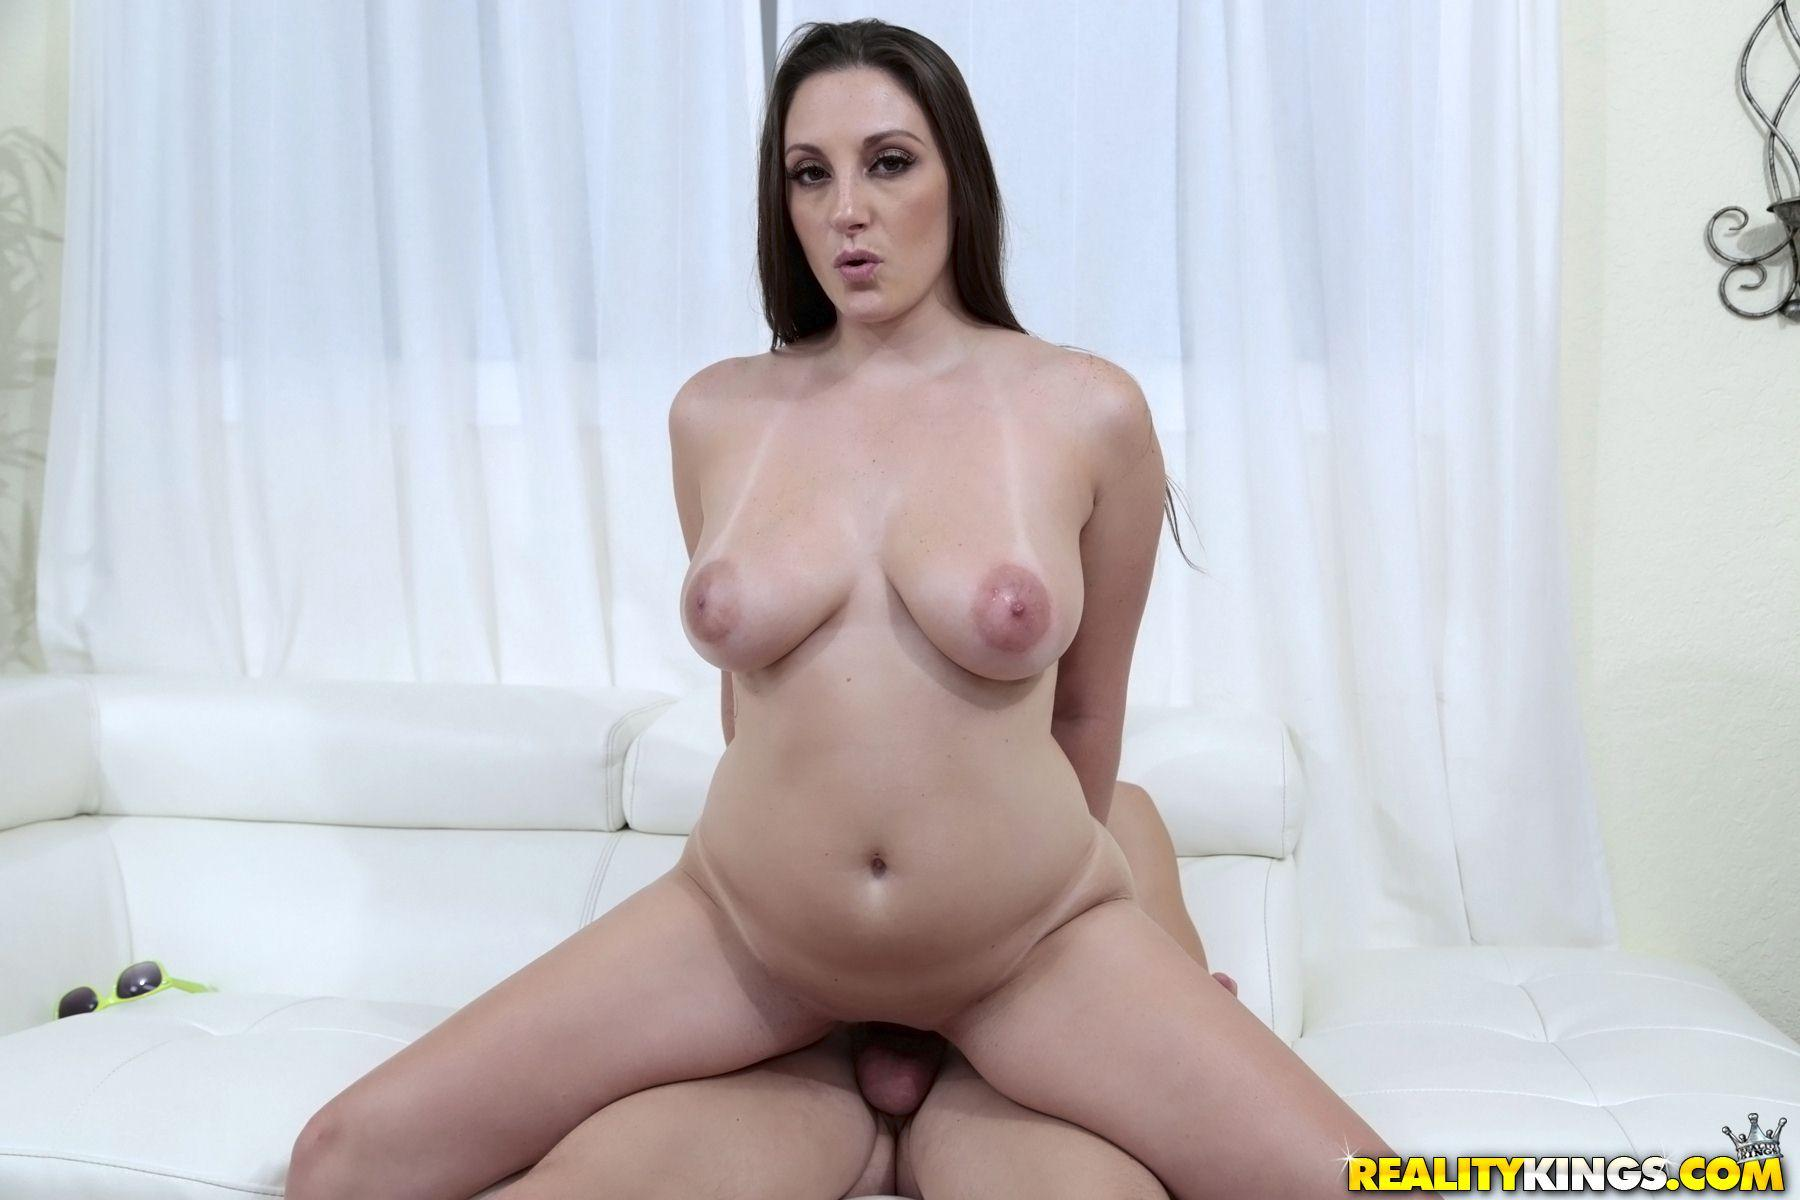 Hottie gets her tight pussy pumped 10